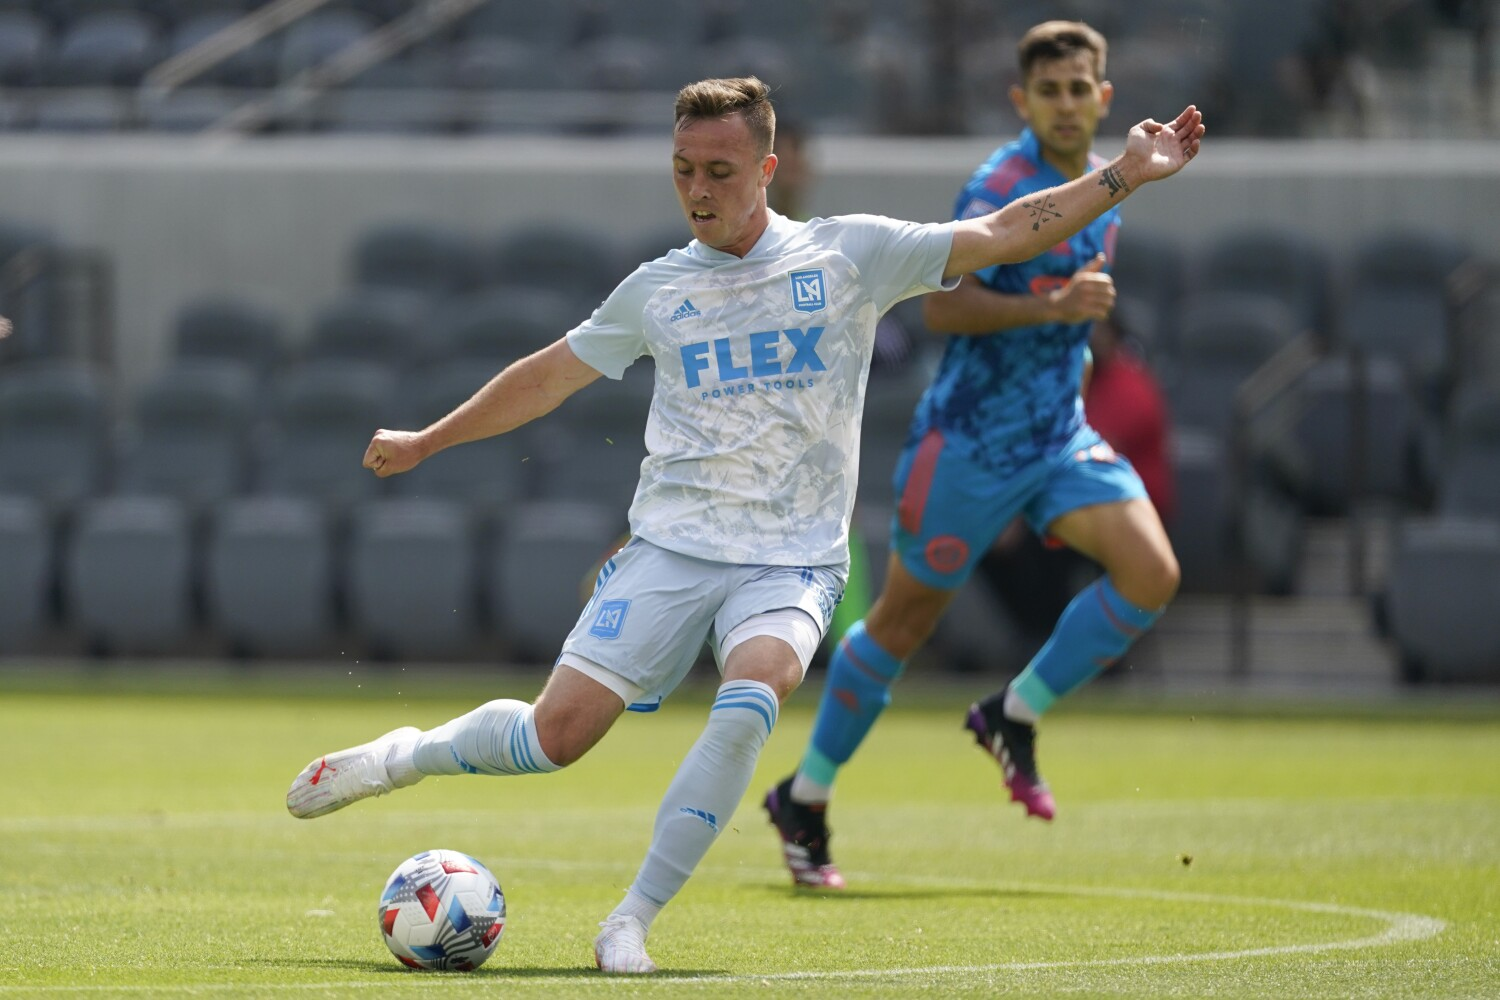 LAFC sends forward Corey Baird to the Dynamo for cash and international roster spot